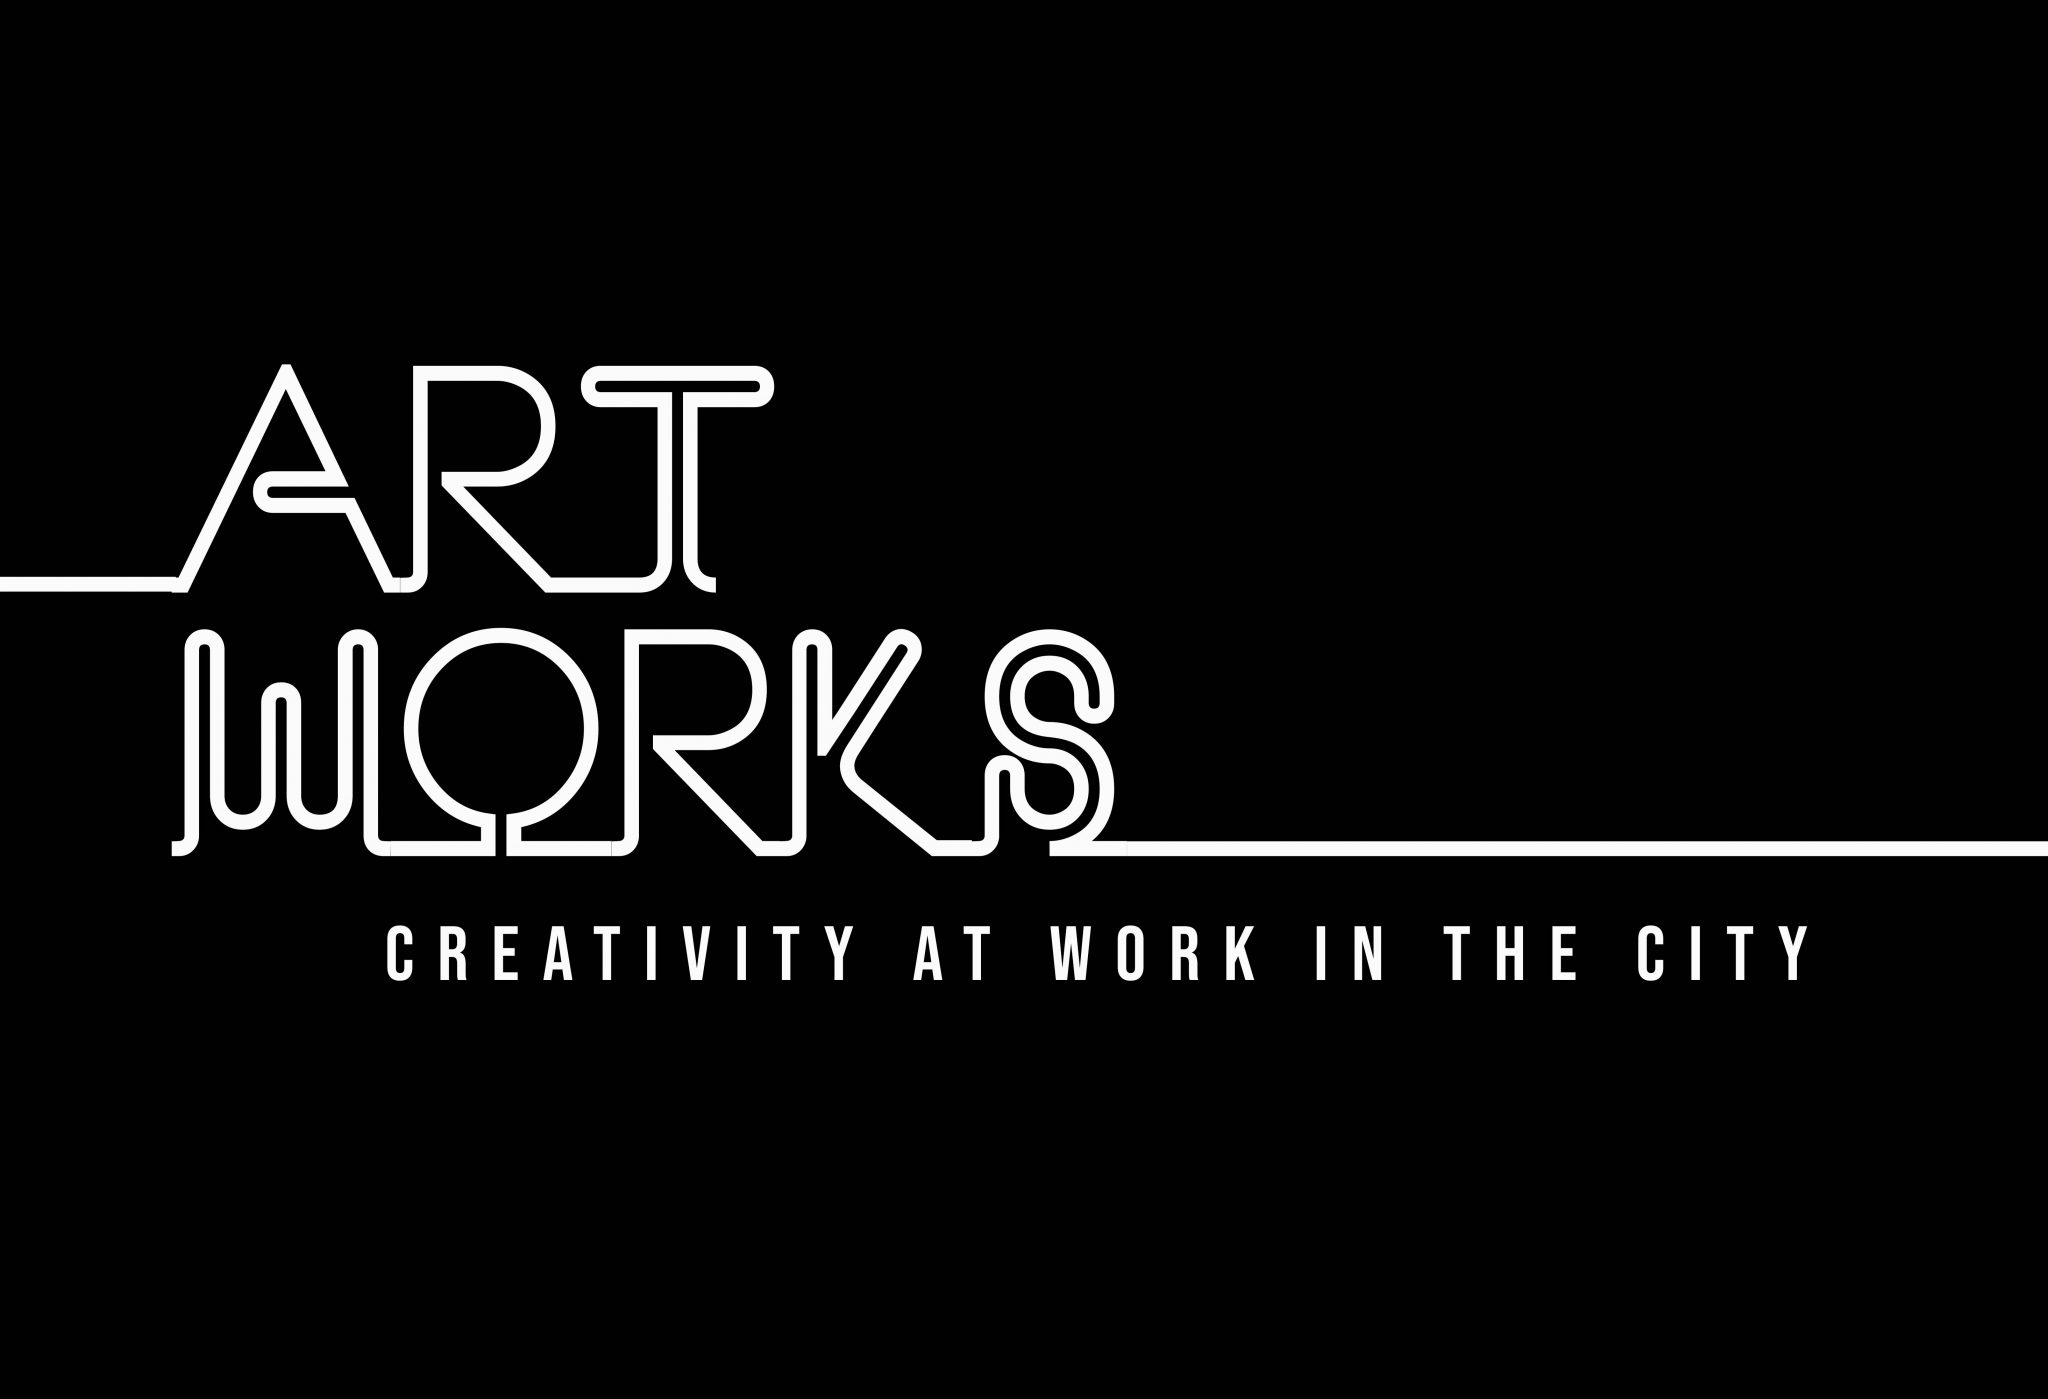 White text on top of a black background which reads 'art works: creativity at work in the city'